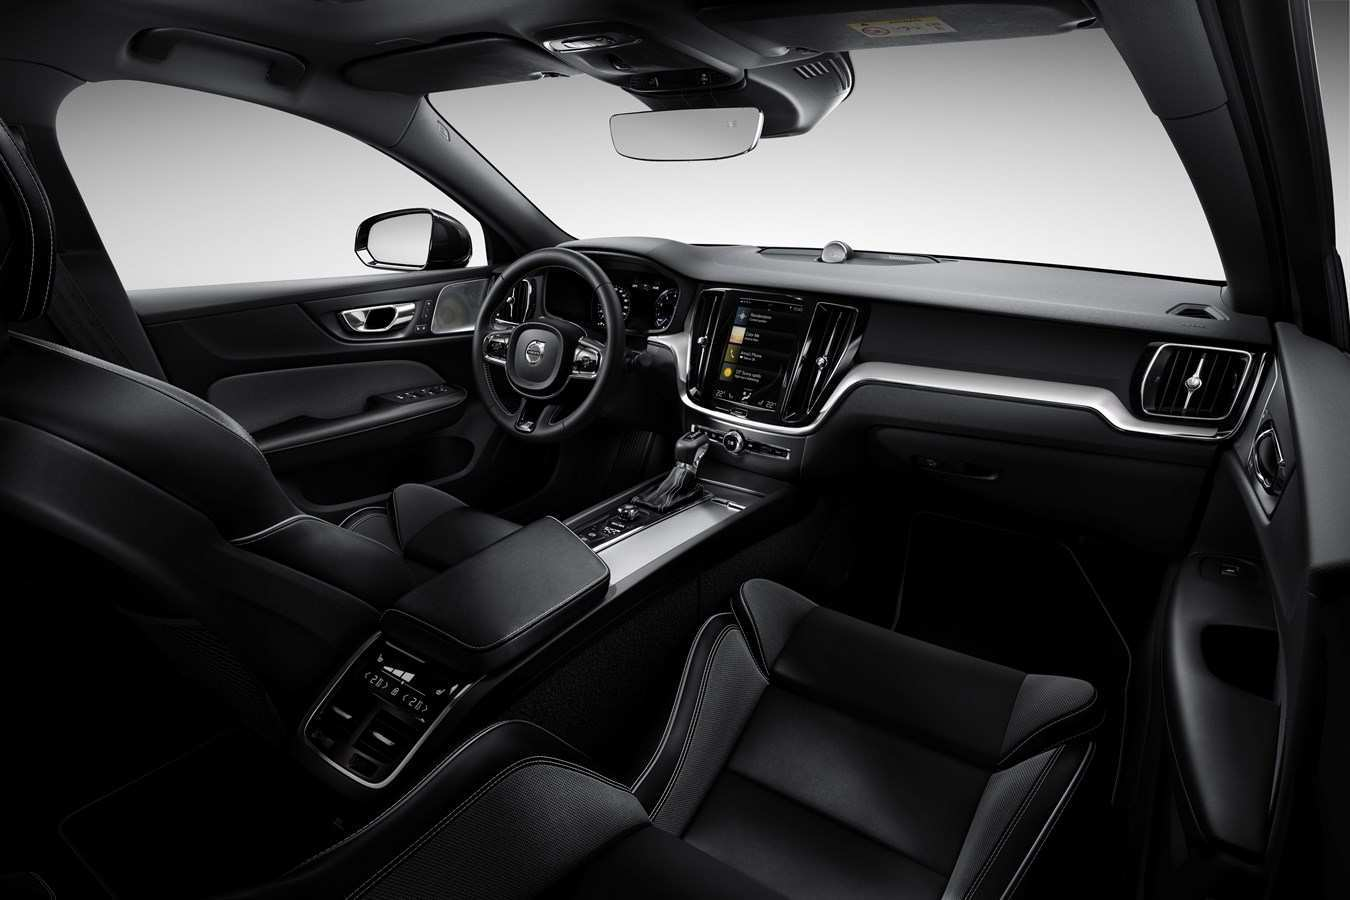 27 The Best 2019 Volvo 860 Interior Release Date And Concept